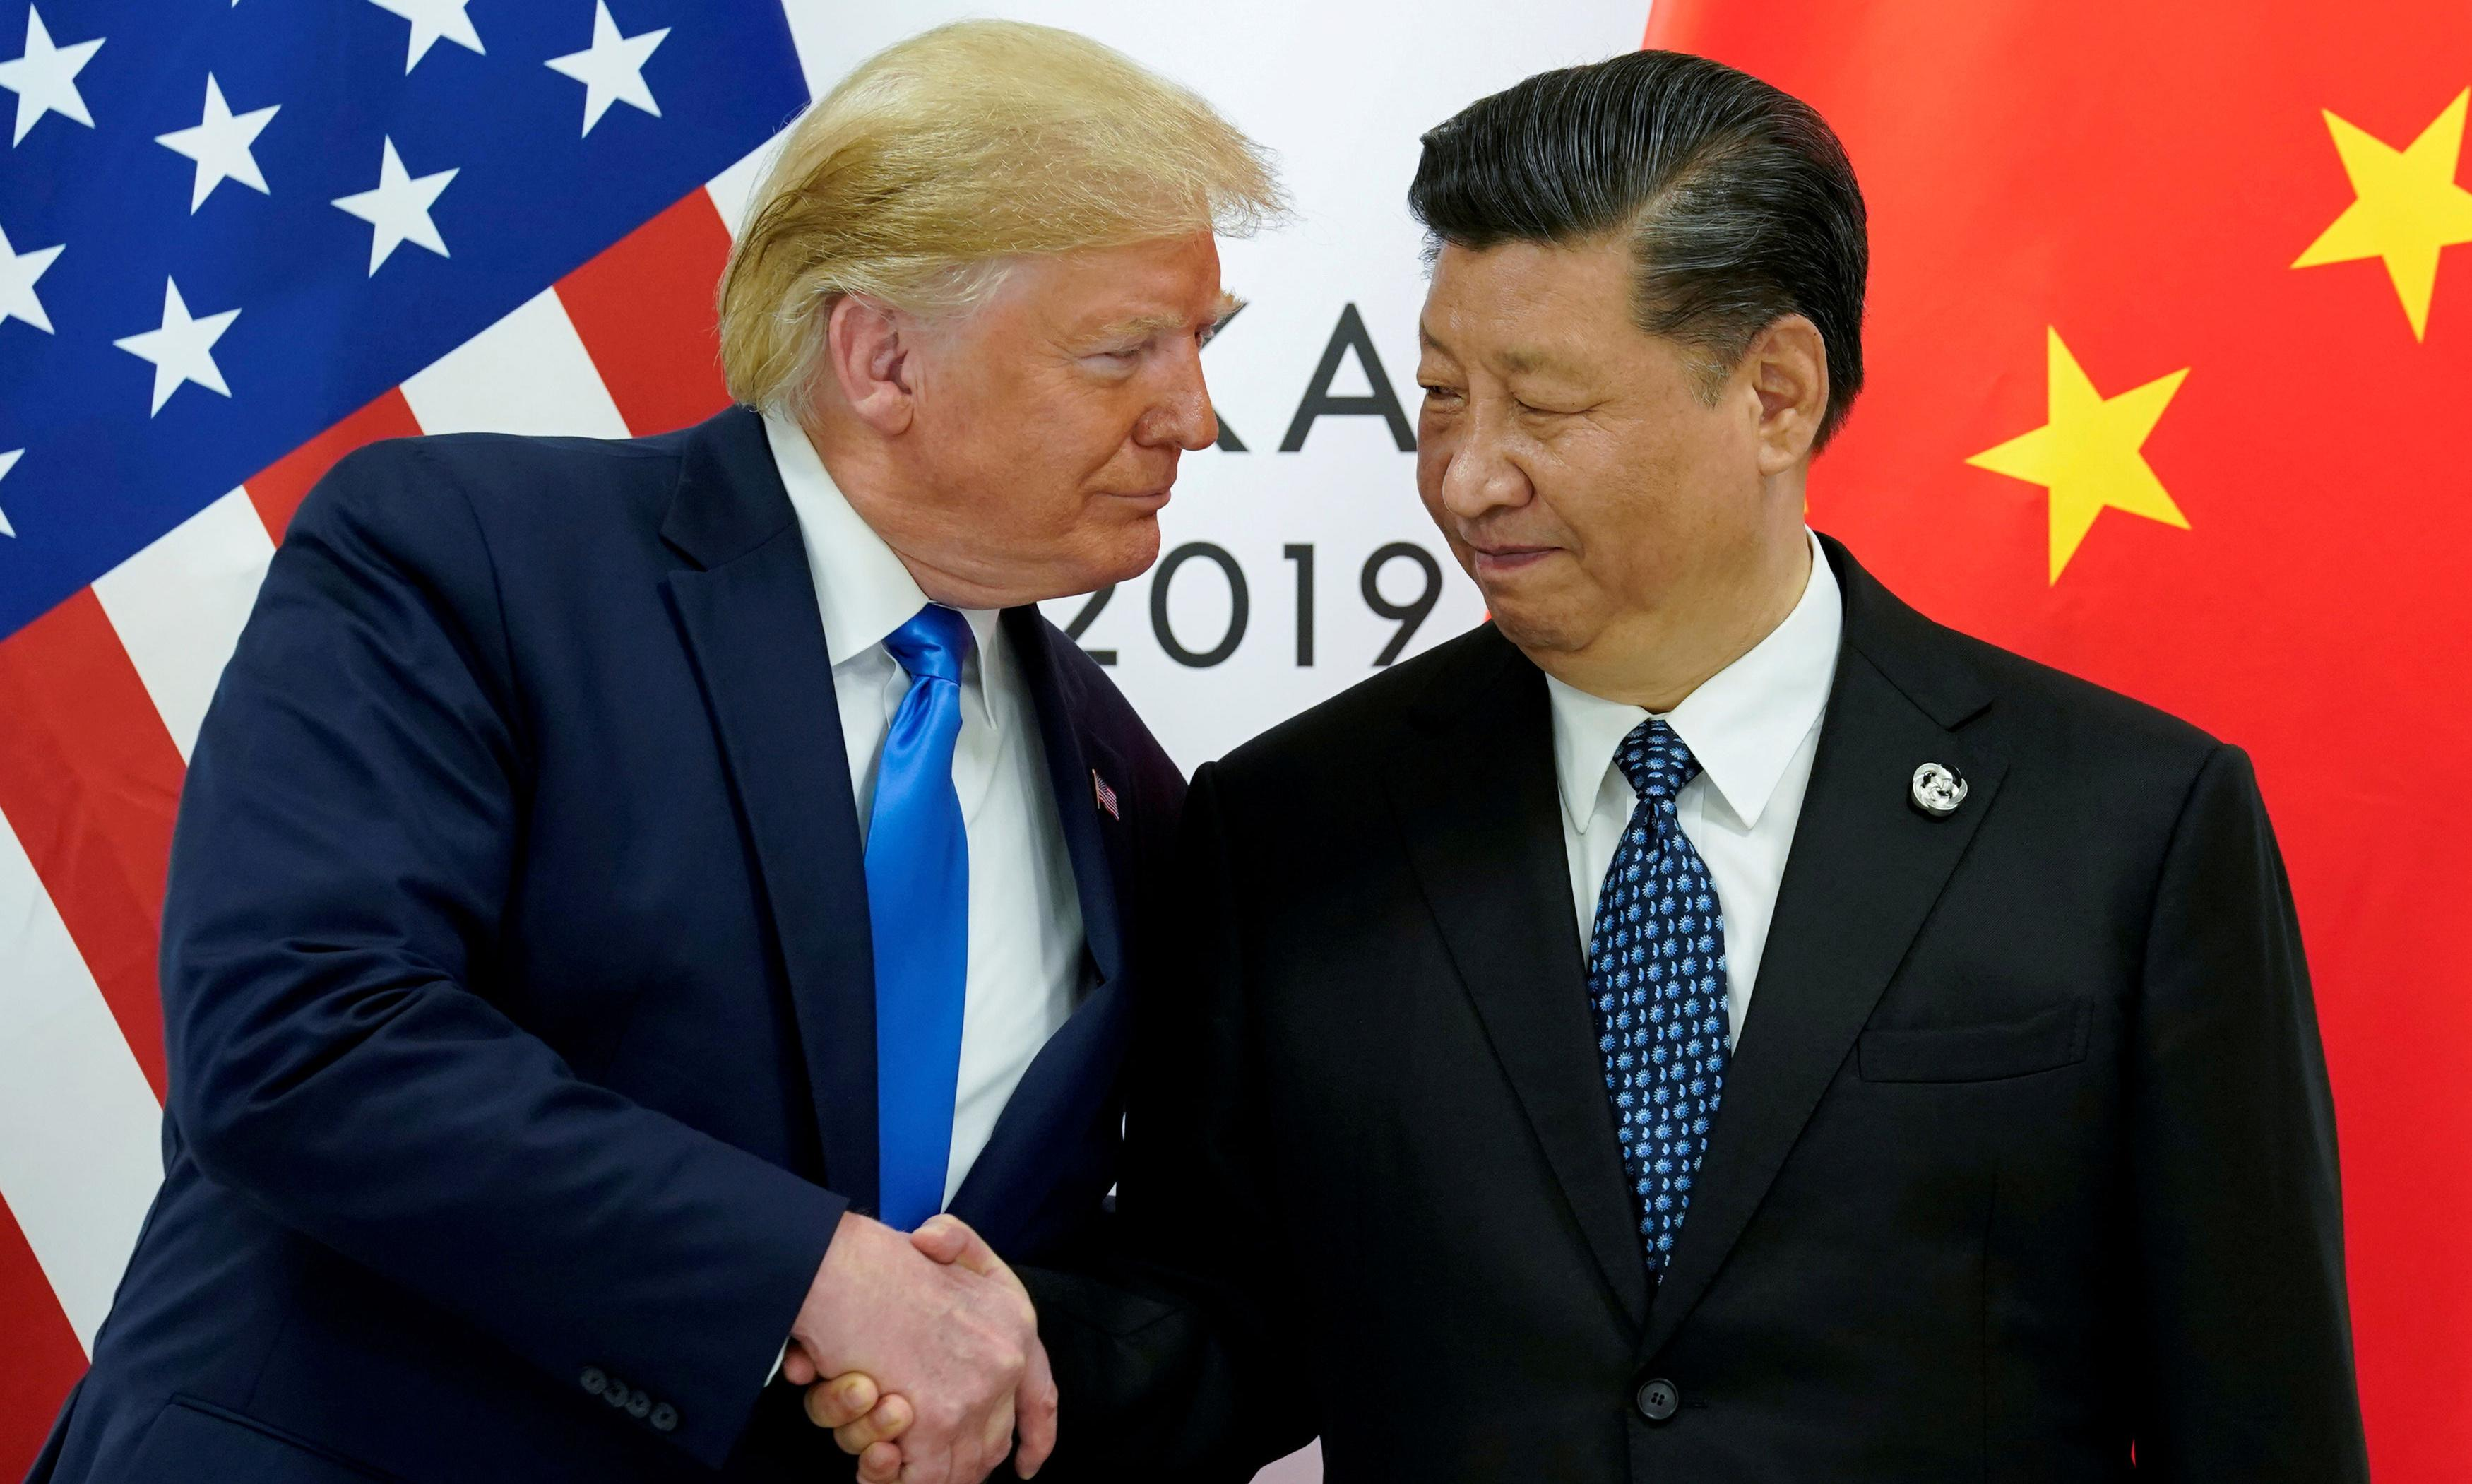 Opioids emerge as key sticking point for US-China trade deal